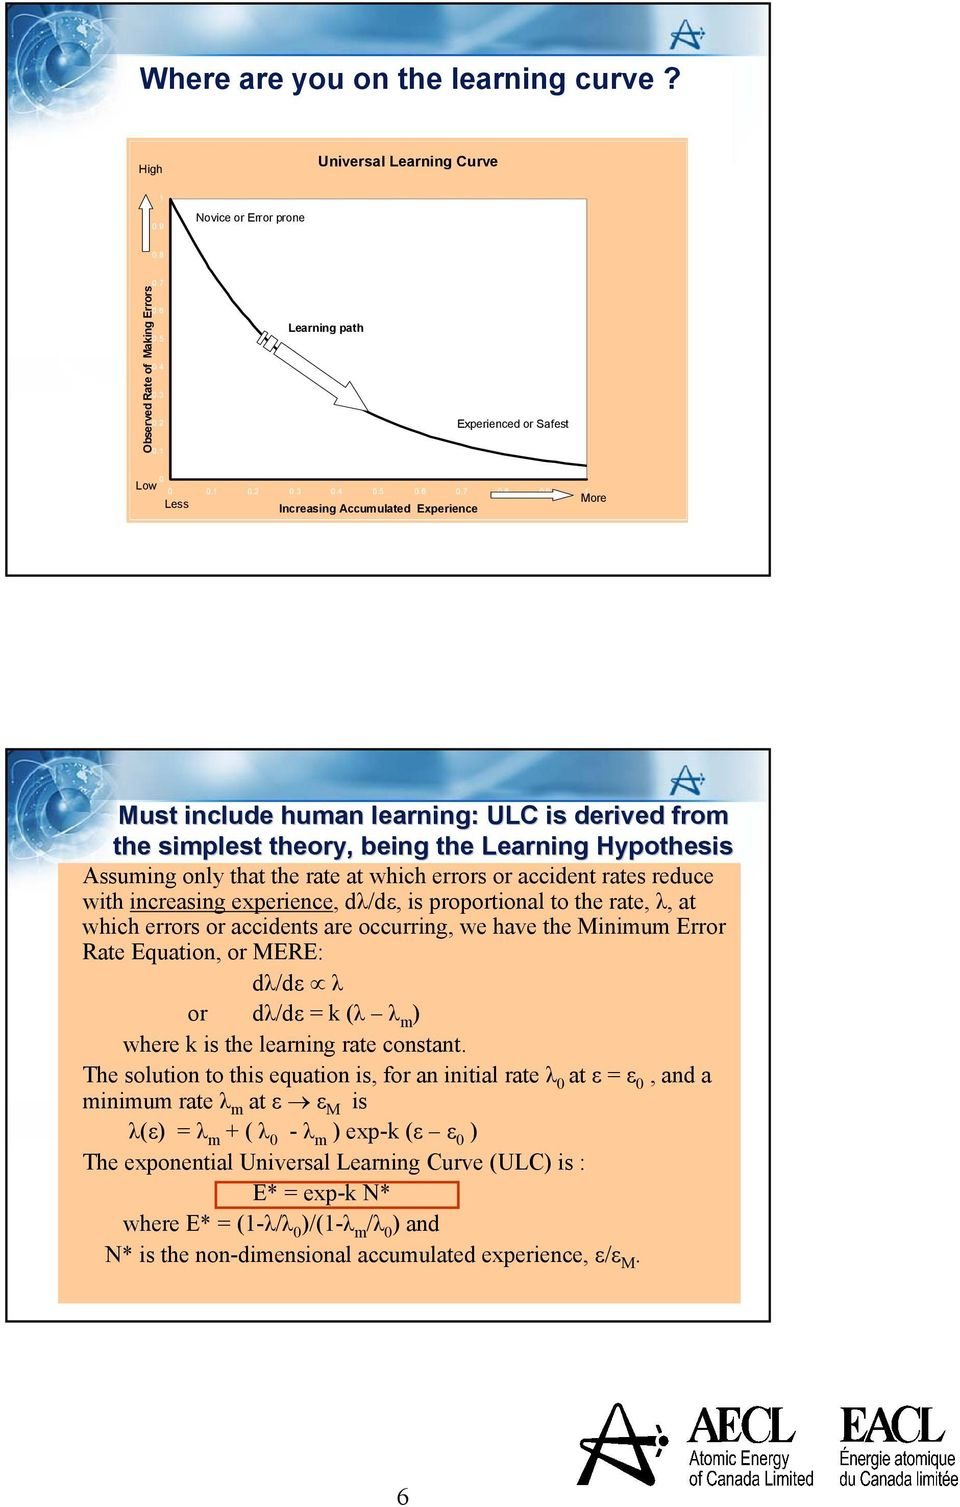 9 1 More Less Increasing Accumulated Experience Must include human learning: ULC is derived from the simplest theort heory, being the Learning Hypothesis Assuming only that the rate at which errors